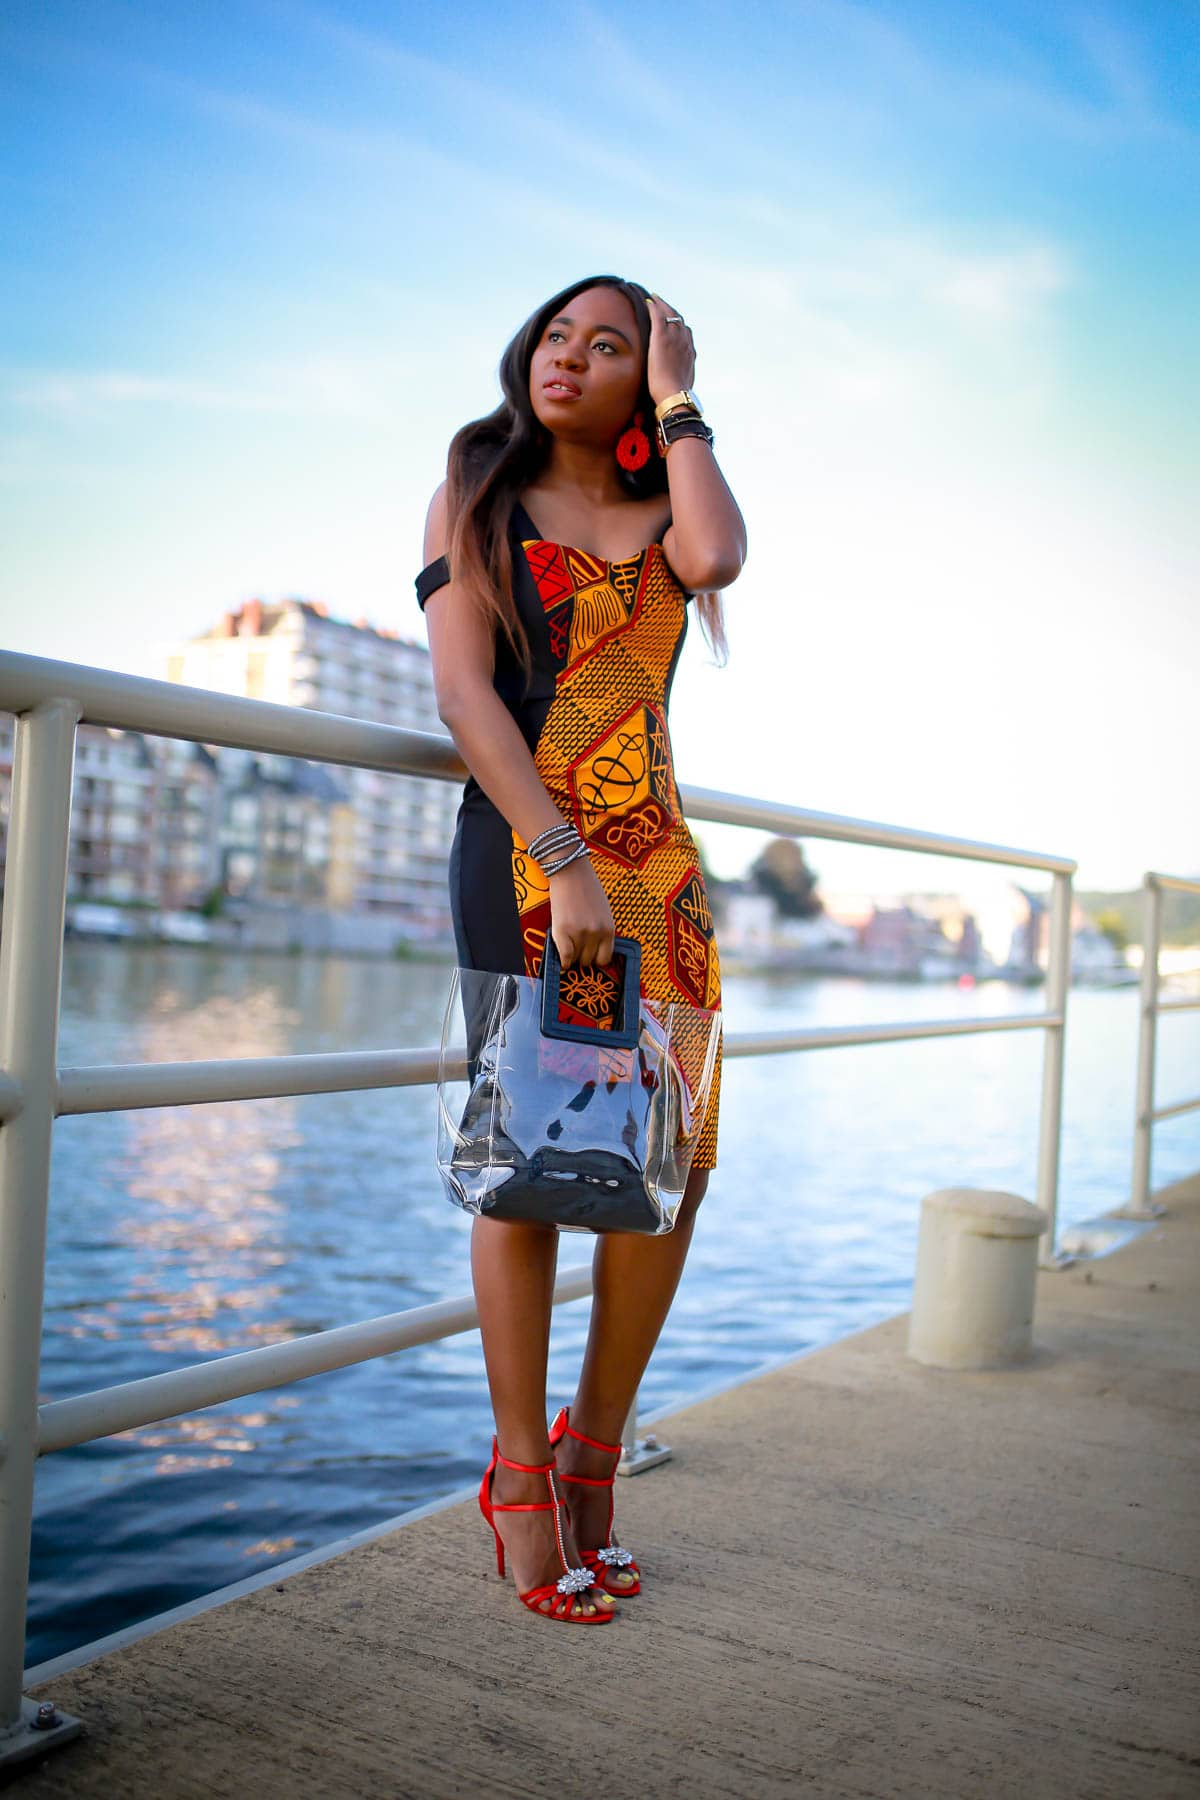 #africanfashionoutfits Totally crushing on this African print sheath dress that is perfect for special events like weddings, birthday parties and more. African fashion lover, Louisa, shares this stunning ankara dress and where to find a similar style. #africanwedding #ankarastyles